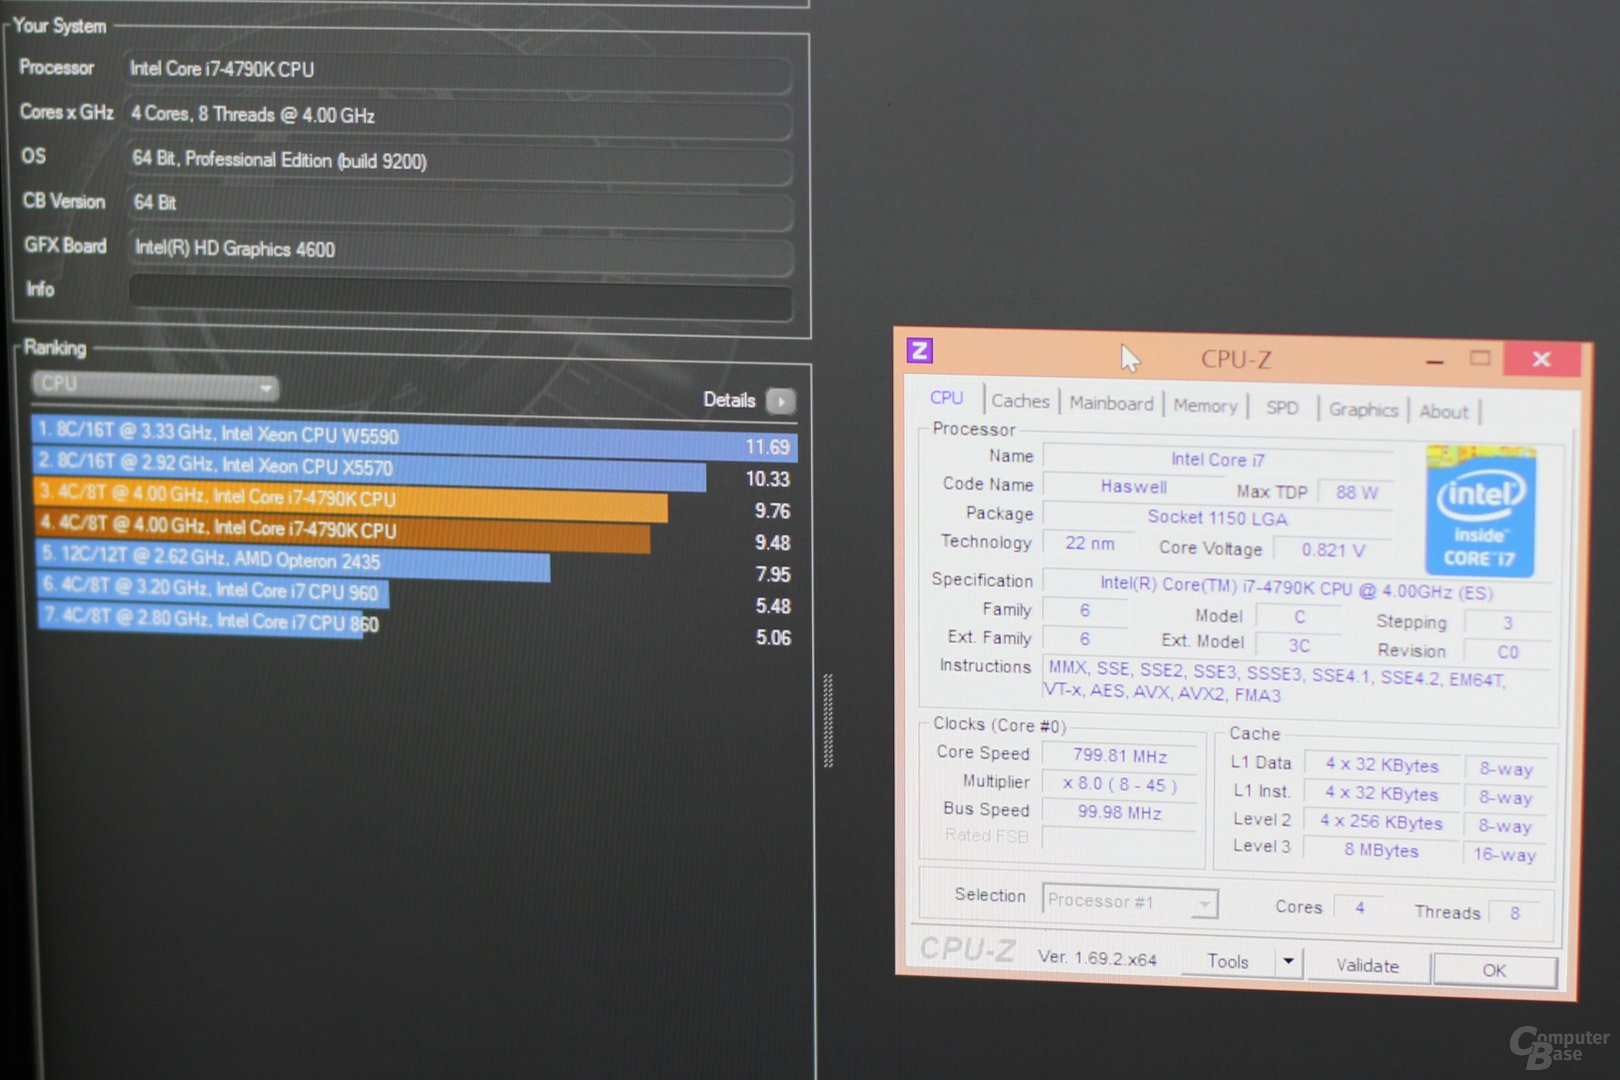 Intels Core i7-4790K in Cinebench 11.5